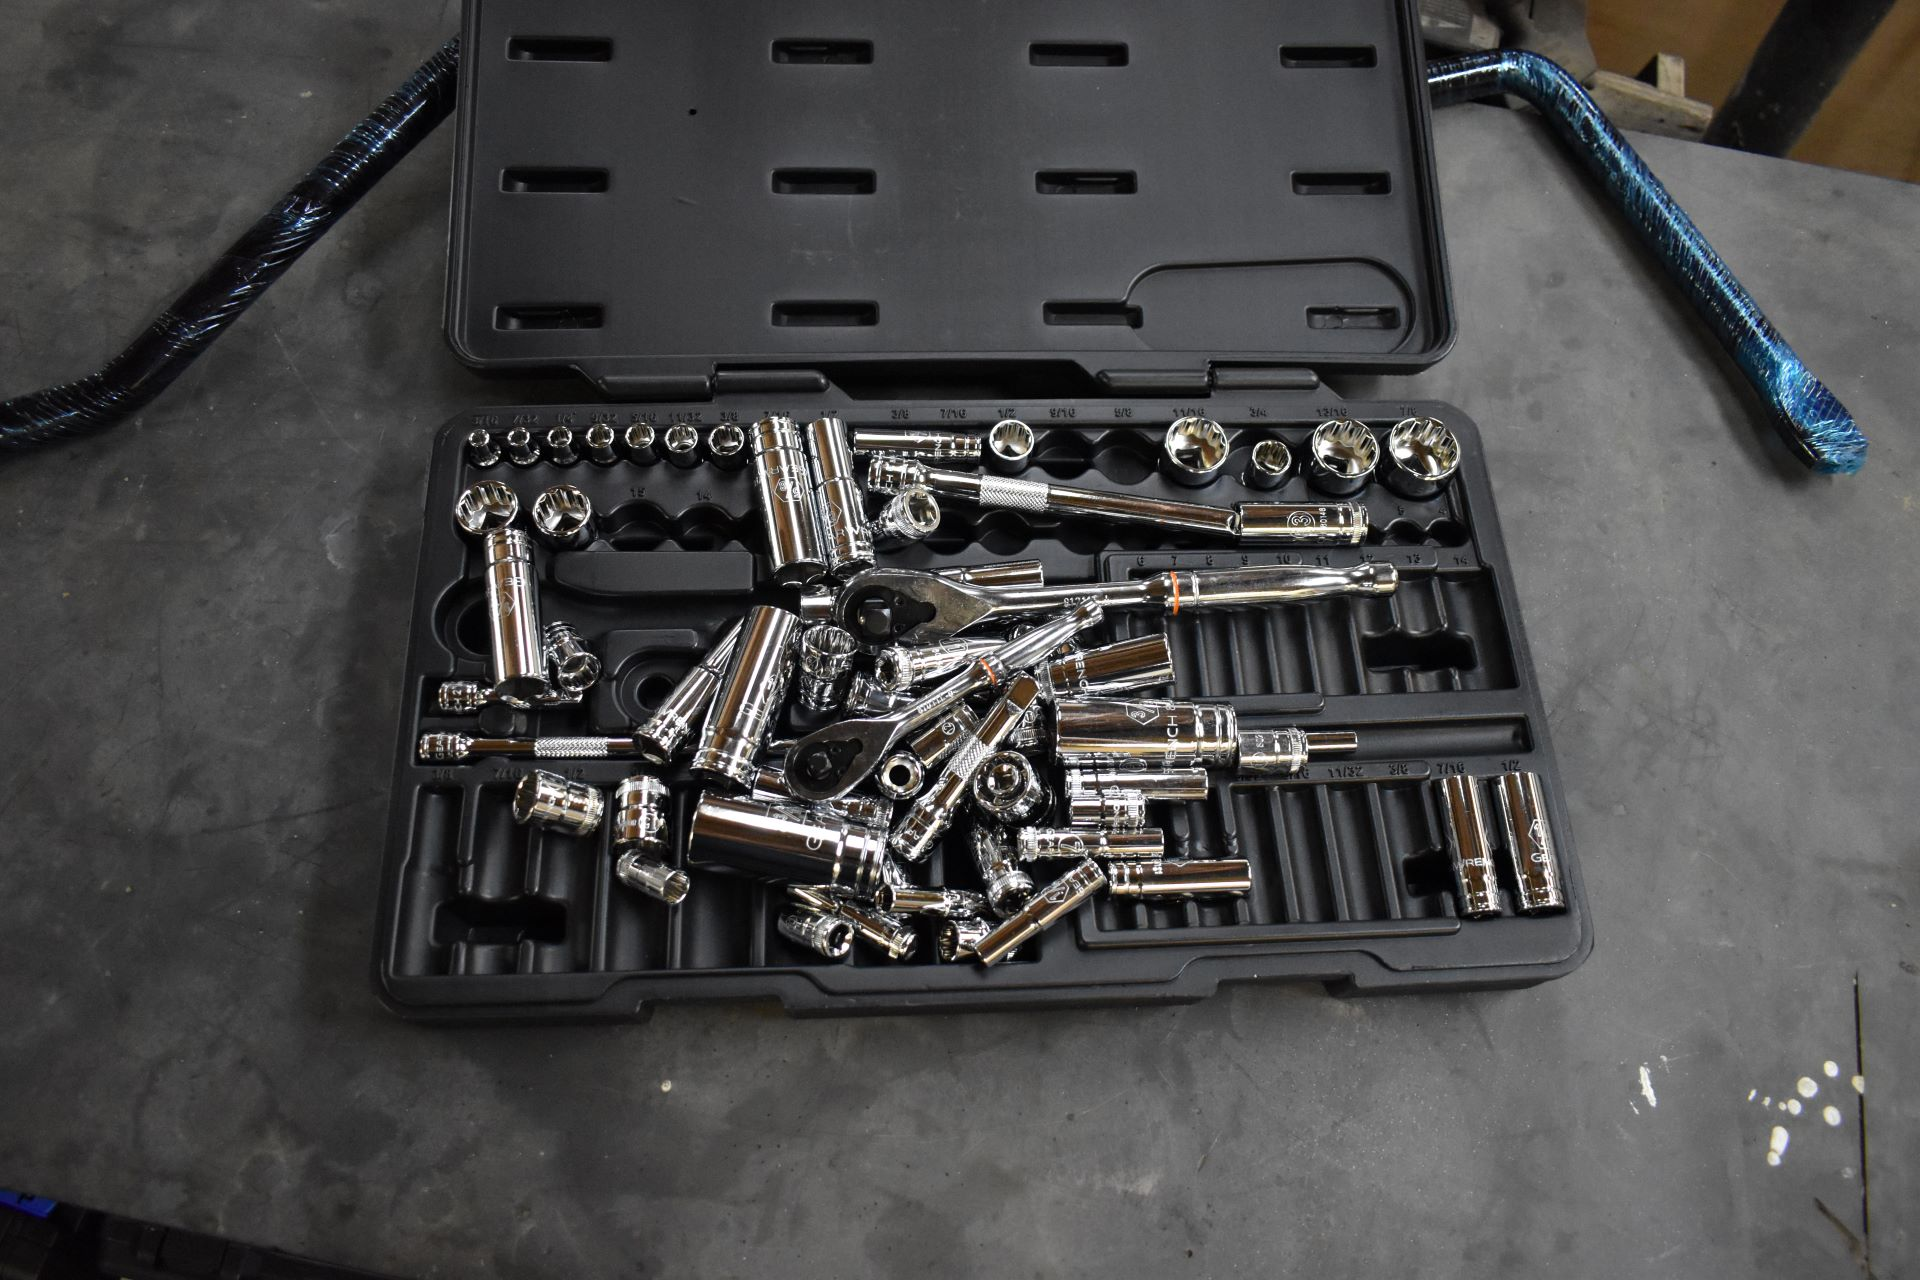 Showing the weakpoint of Gearwrench's case